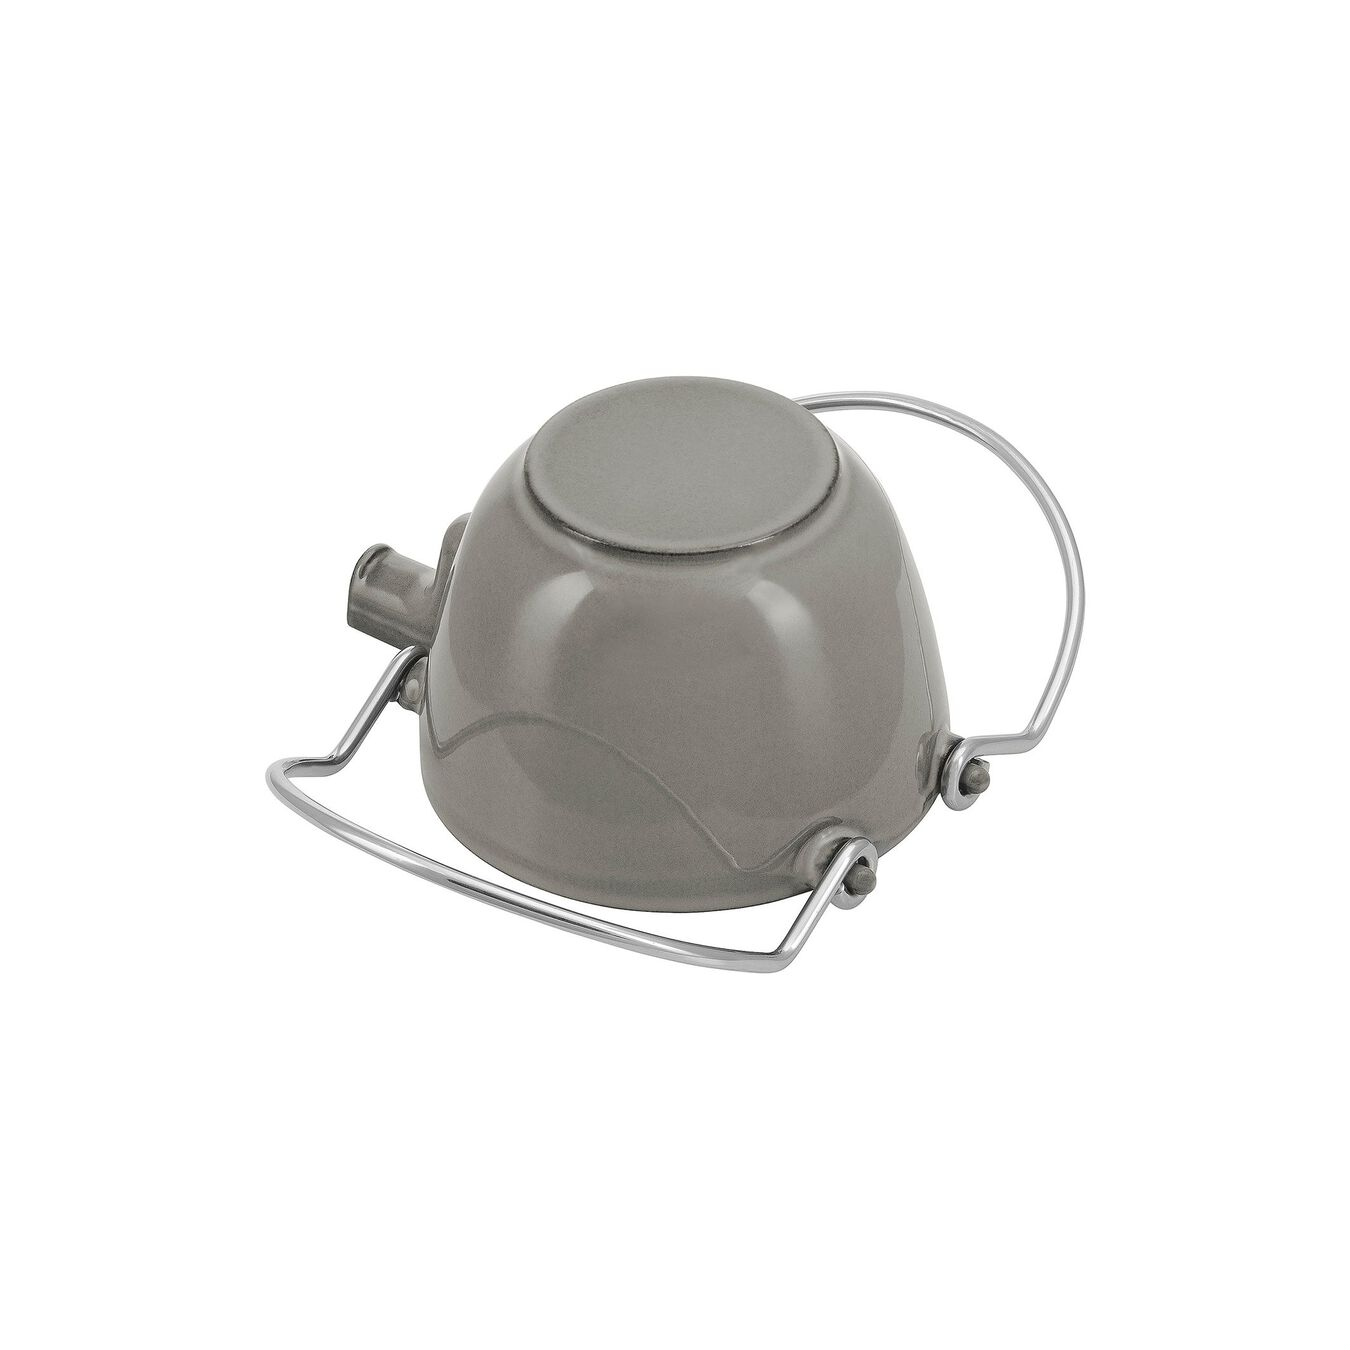 1-qt Round Tea Kettle - Graphite Grey,,large 3